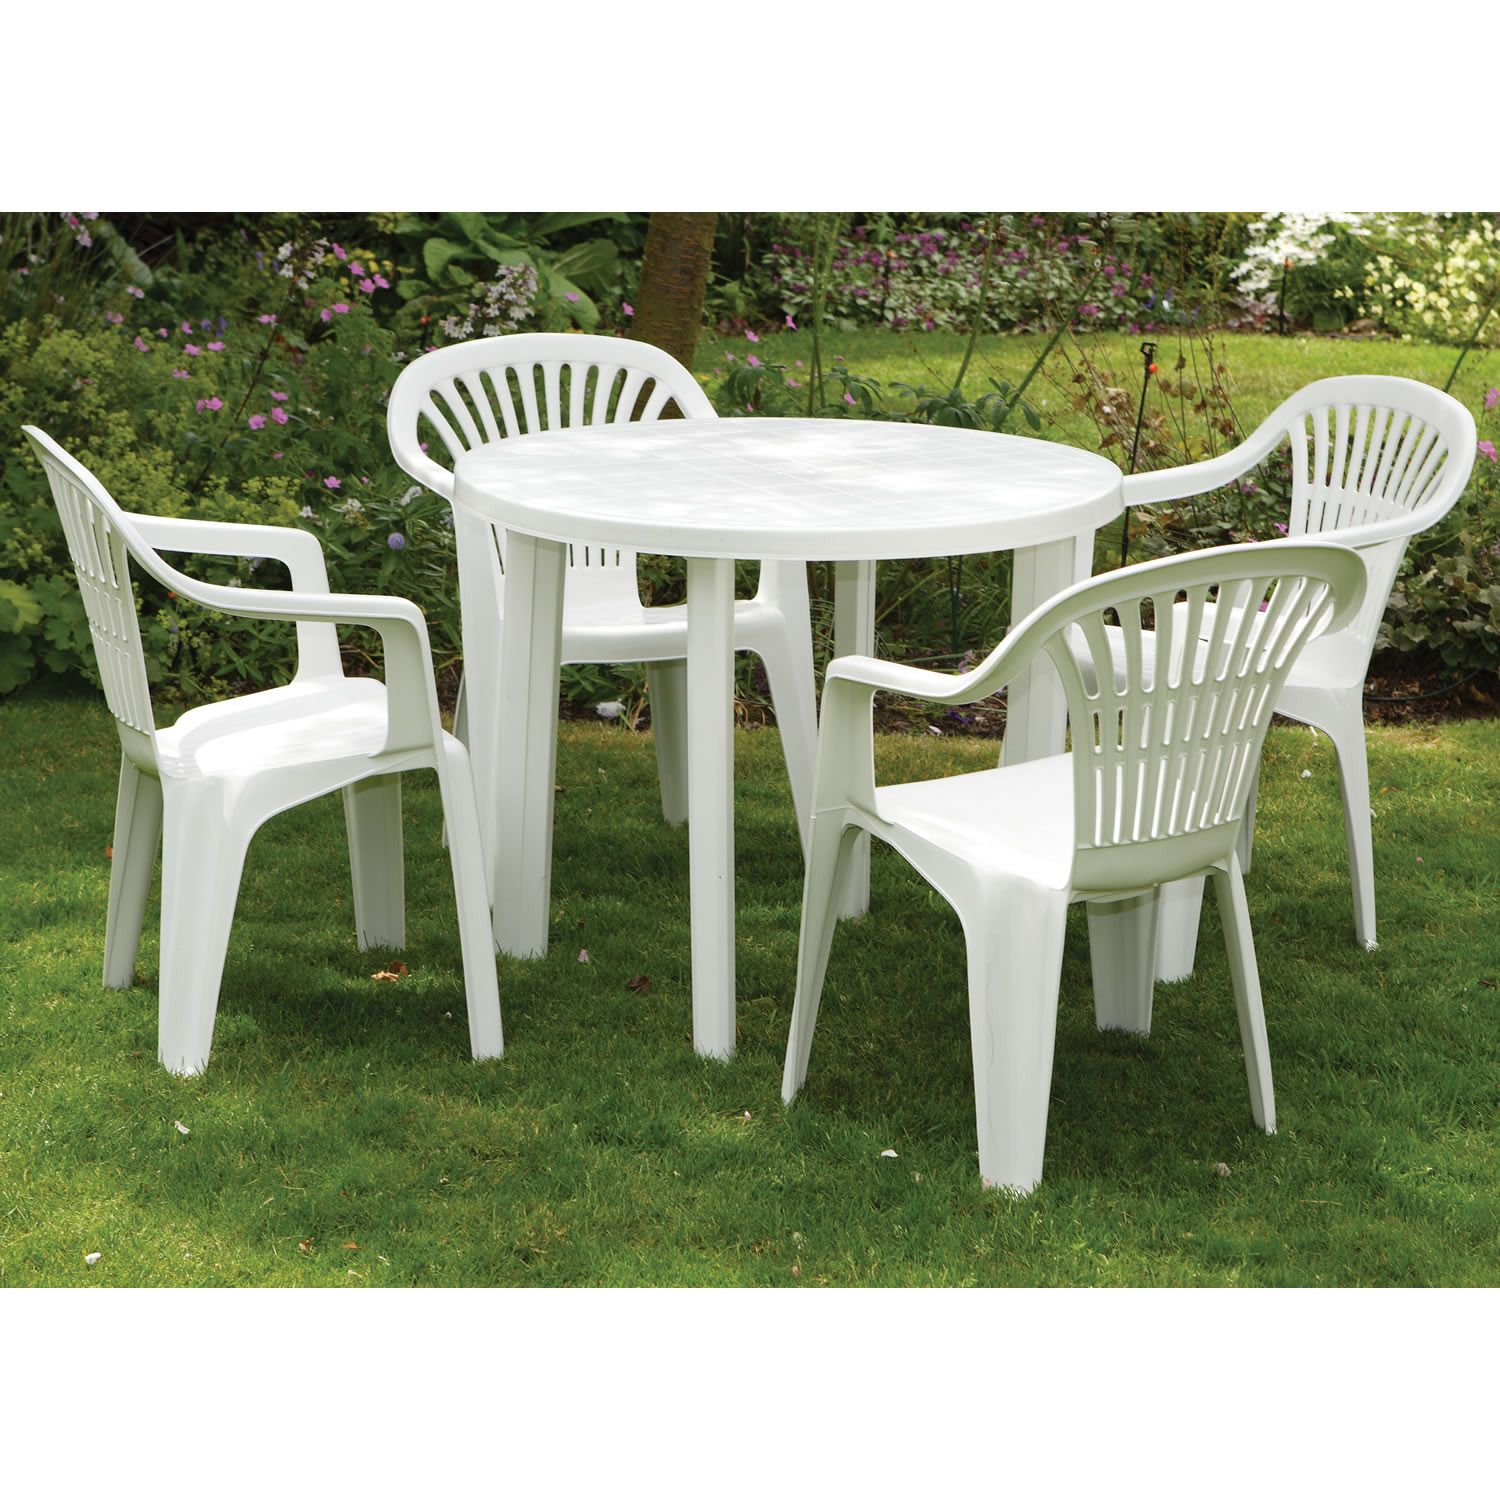 100 Round Plastic Garden Table Best Home Office Furniture Check More At Http Lively Outdoor Tables And Chairs Cheap Outdoor Chairs Plastic Patio Furniture